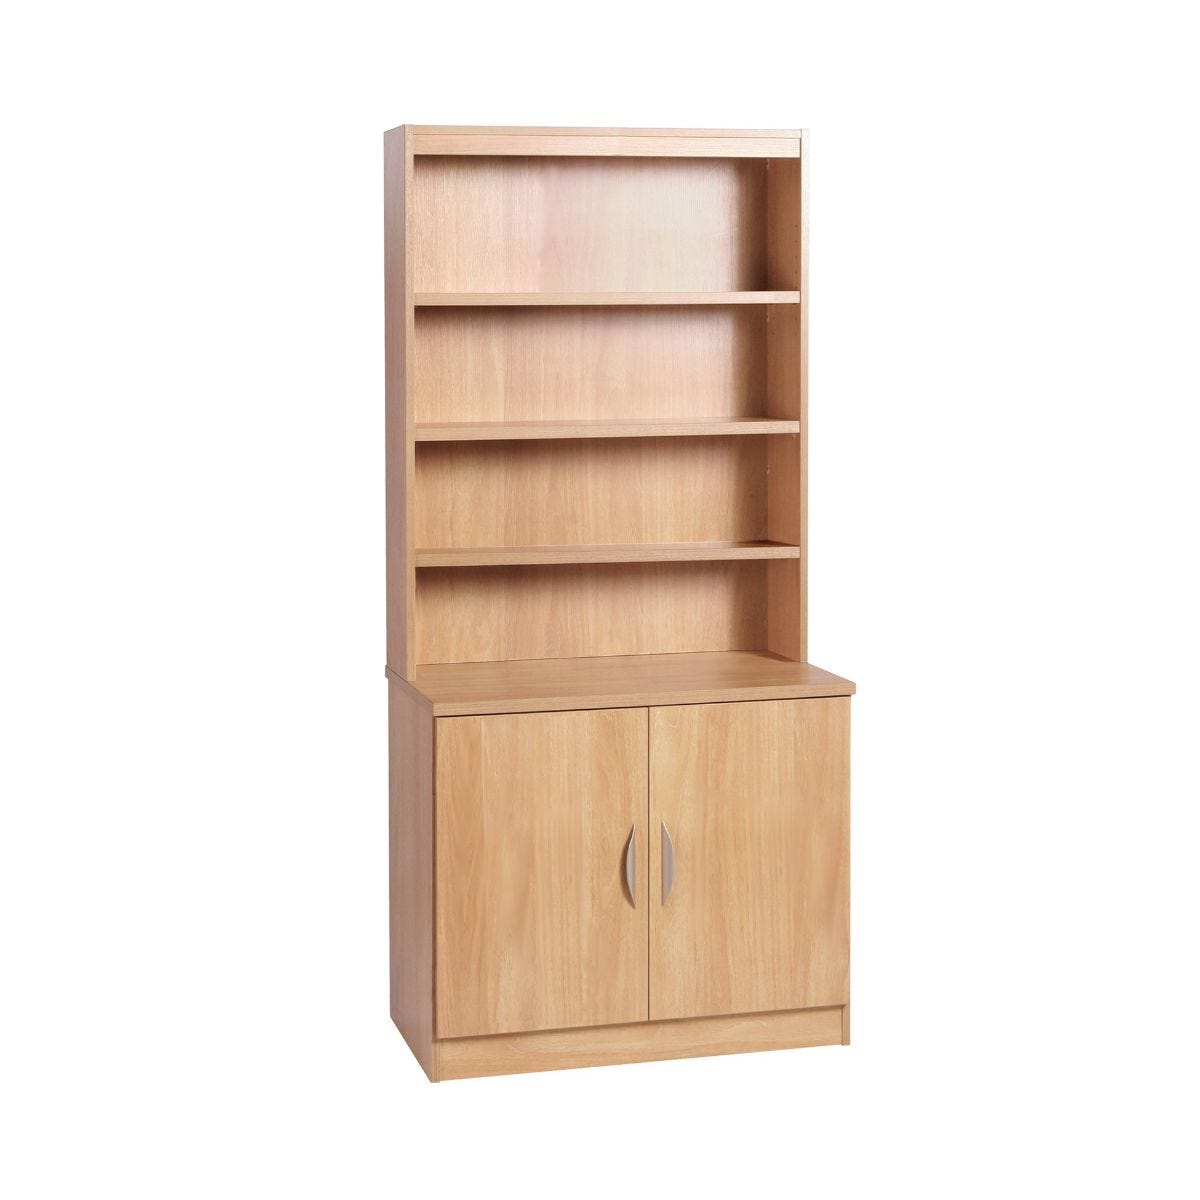 R White Desk Height Cupboard 85cm with Overshelving, Classic Oak Wood Grain